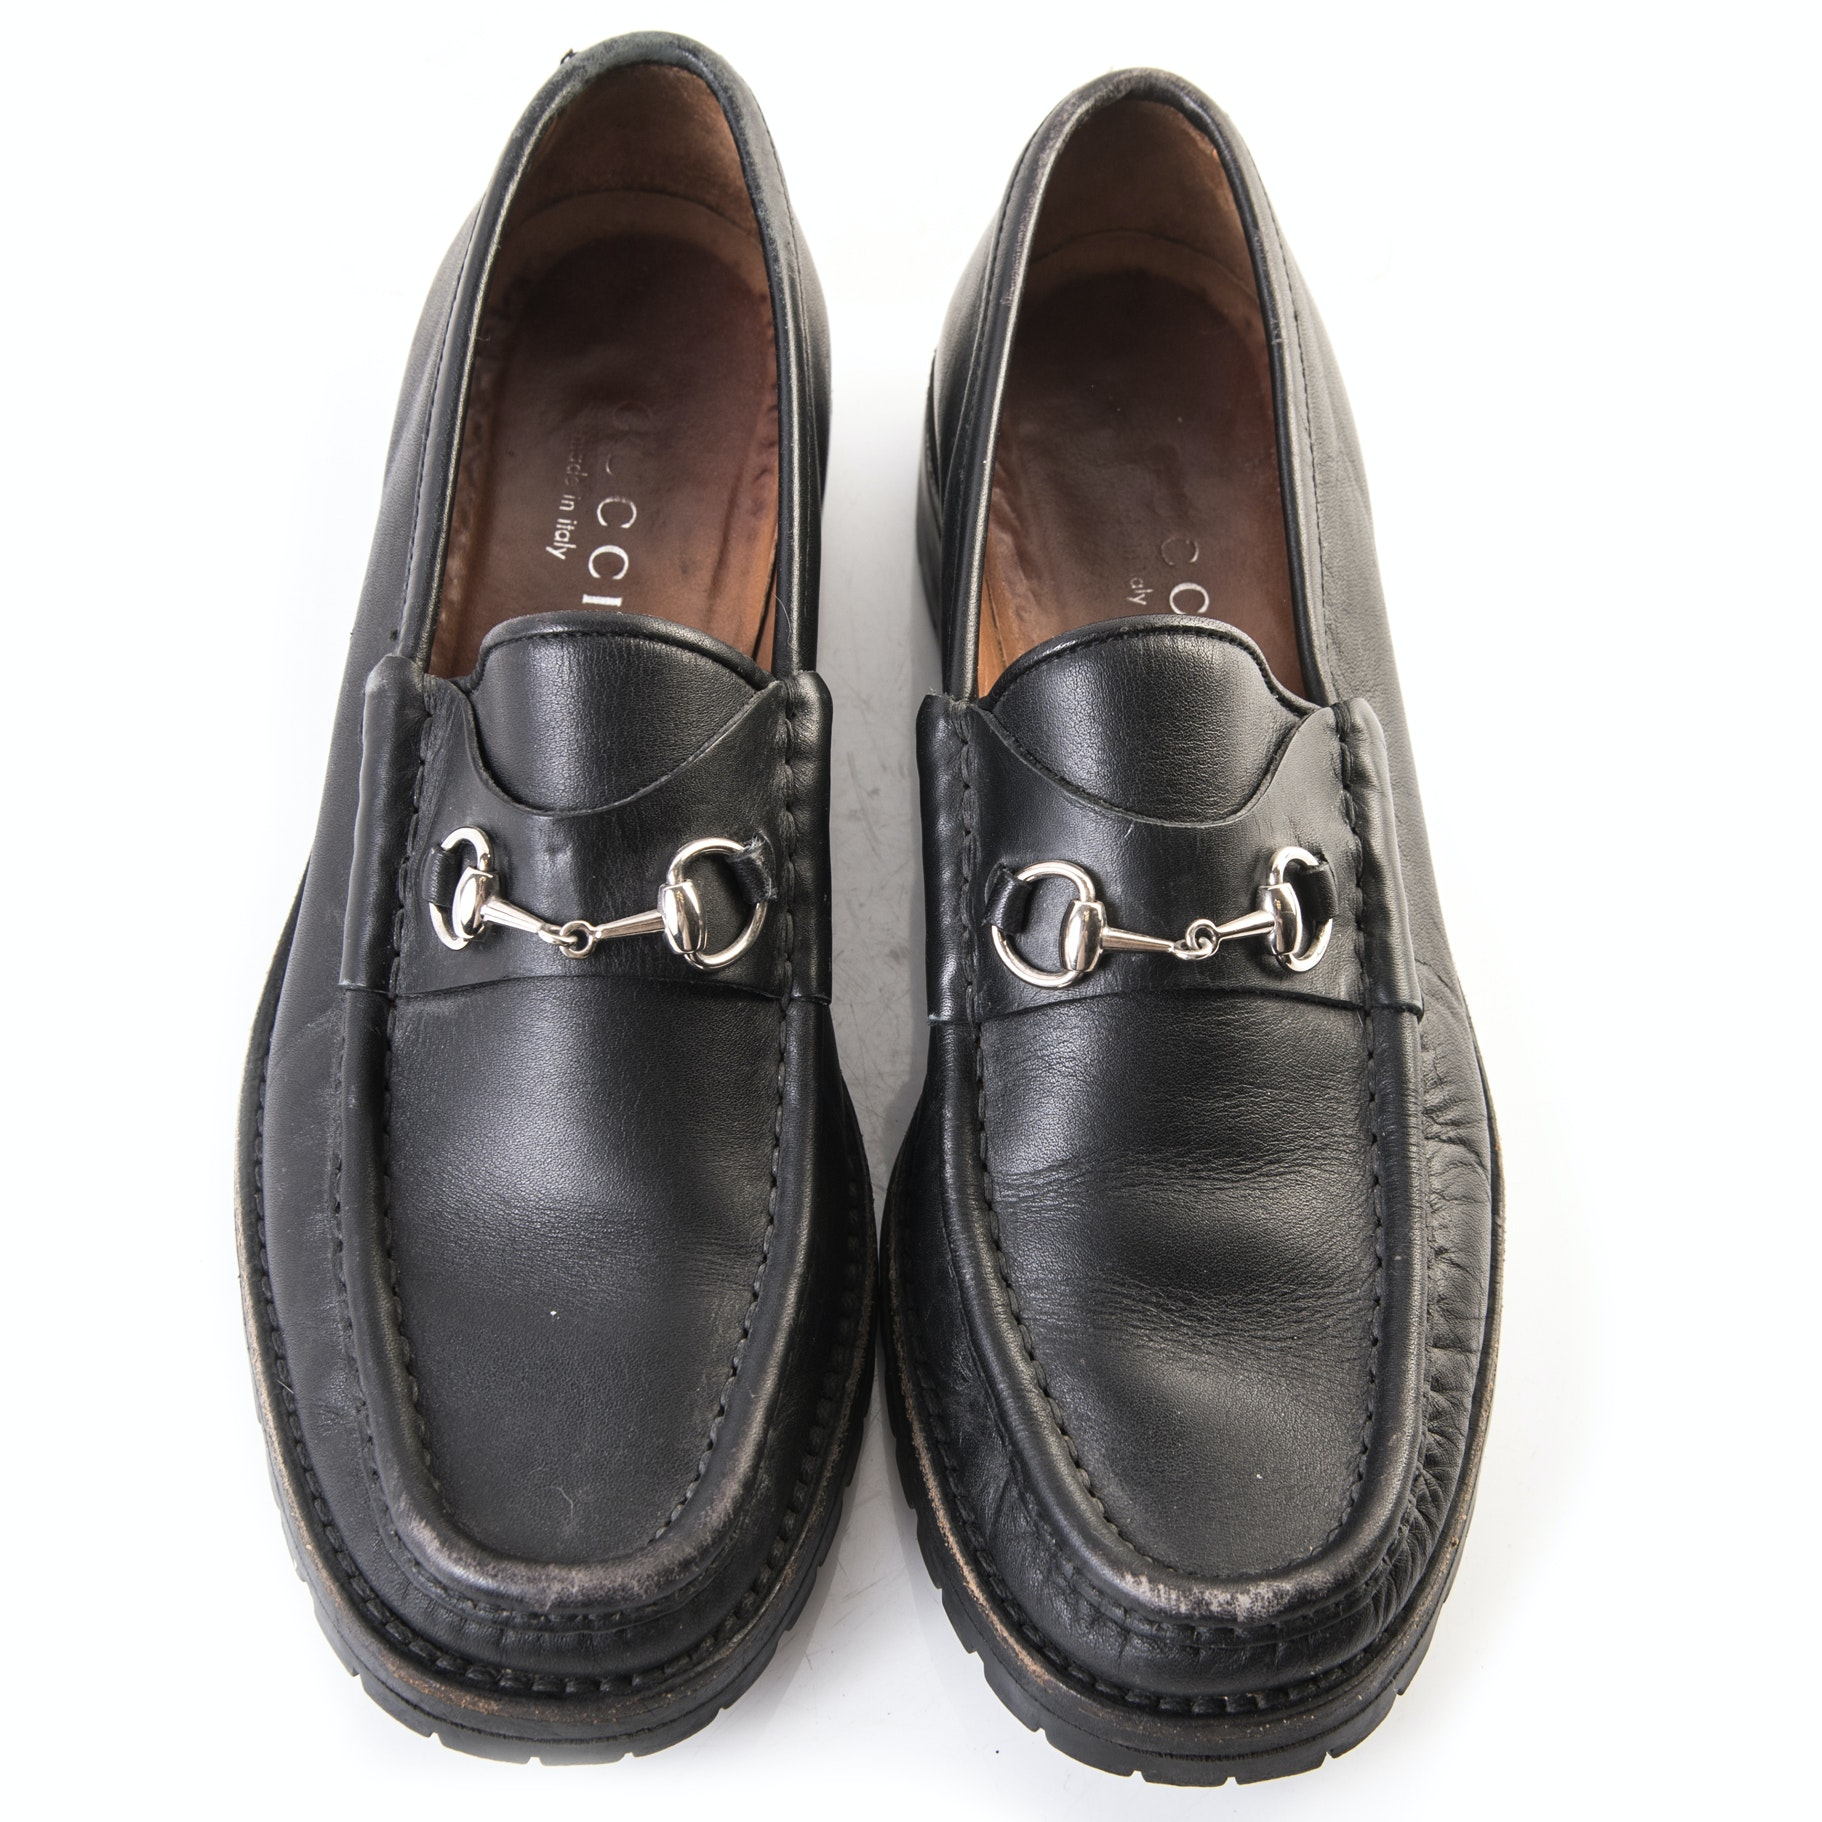 Women's Gucci Black Leather Loafers